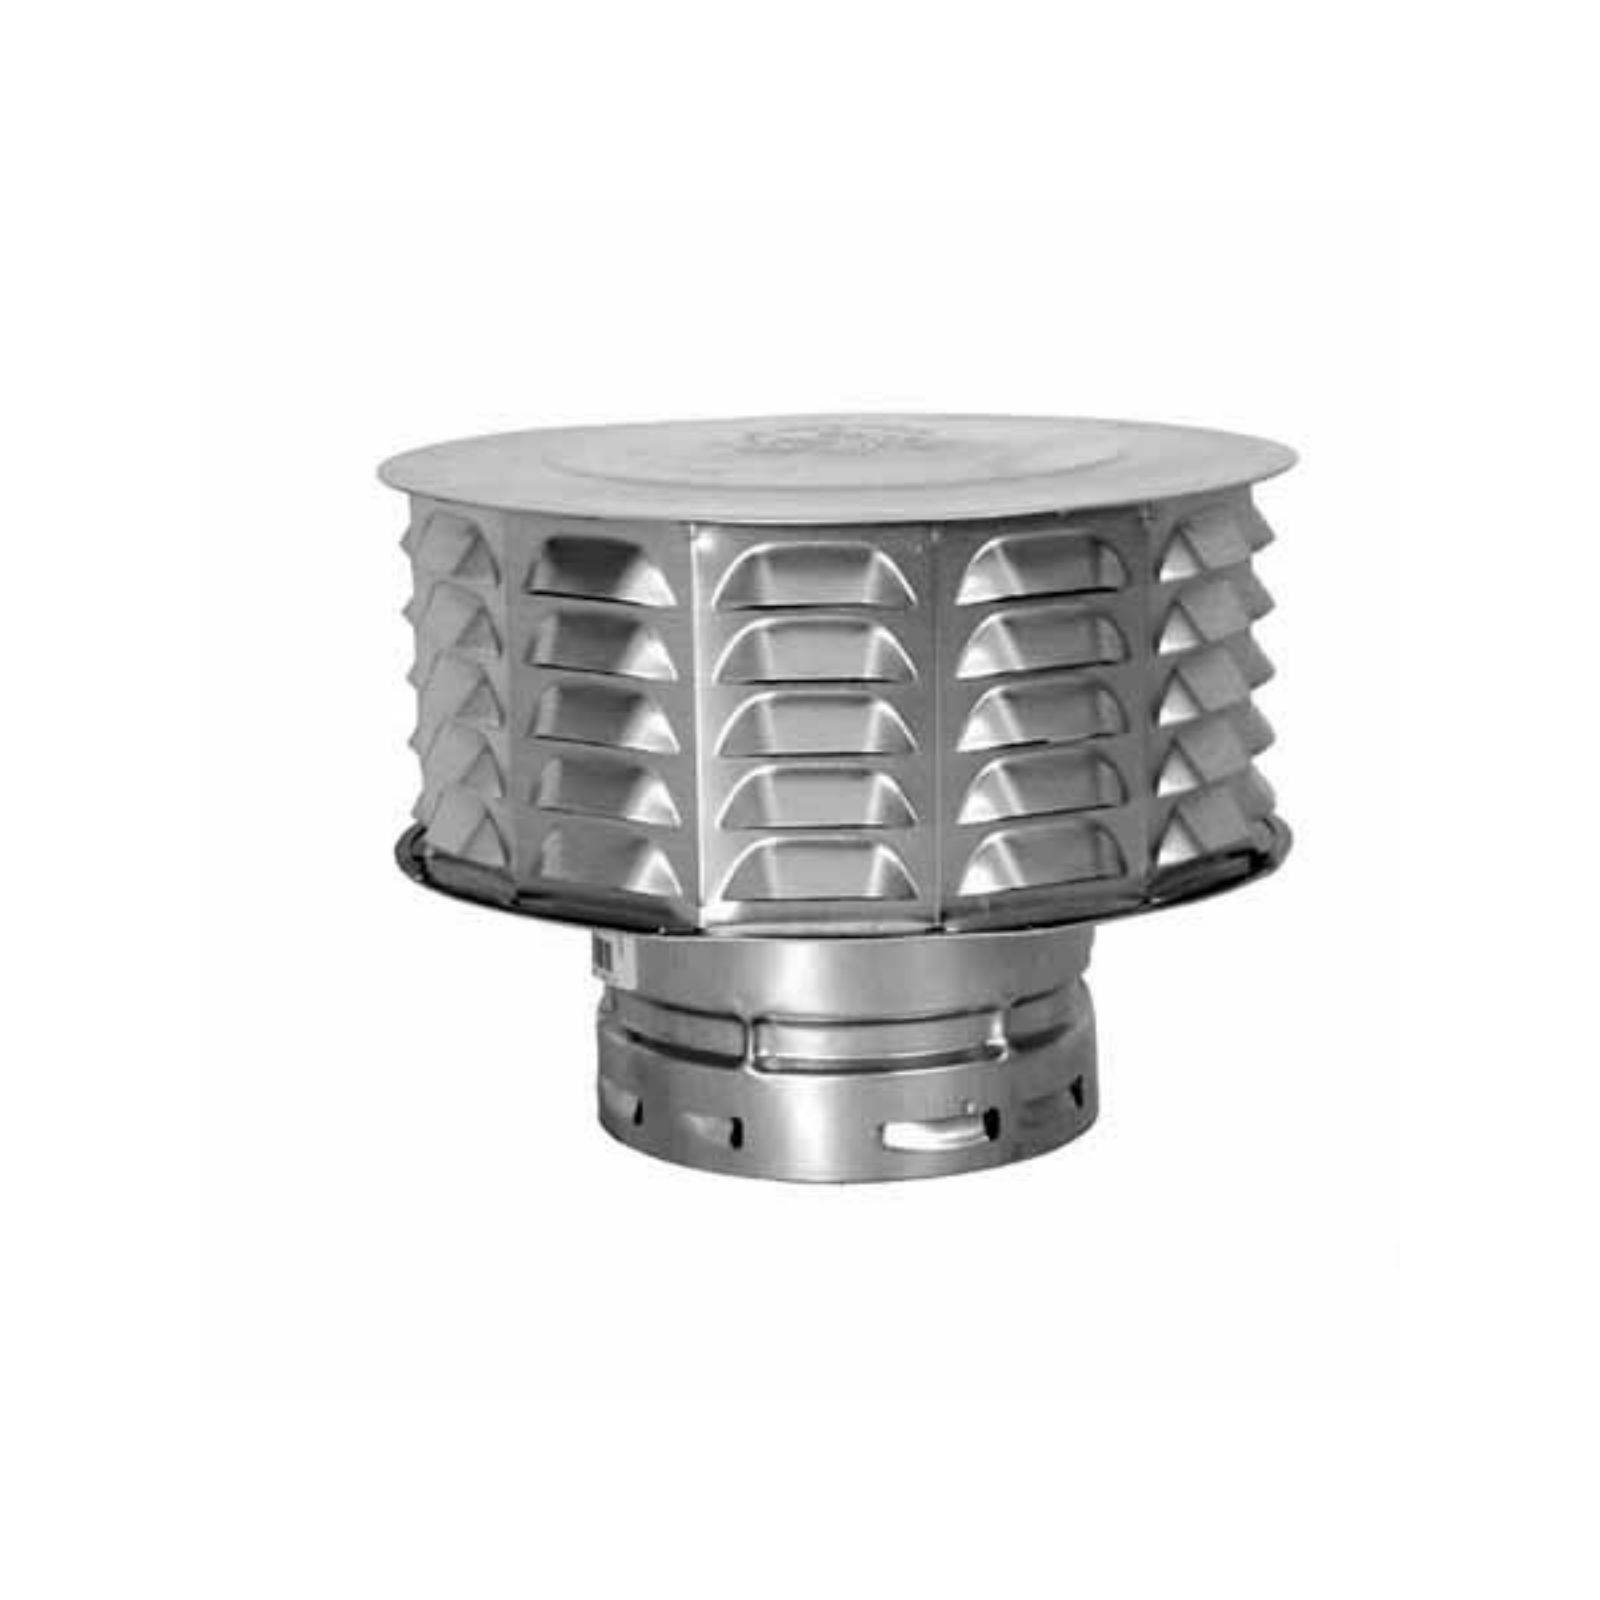 "AmeriVent 5ECW - Snap-lock Cap 5"", Locking, Louvered"